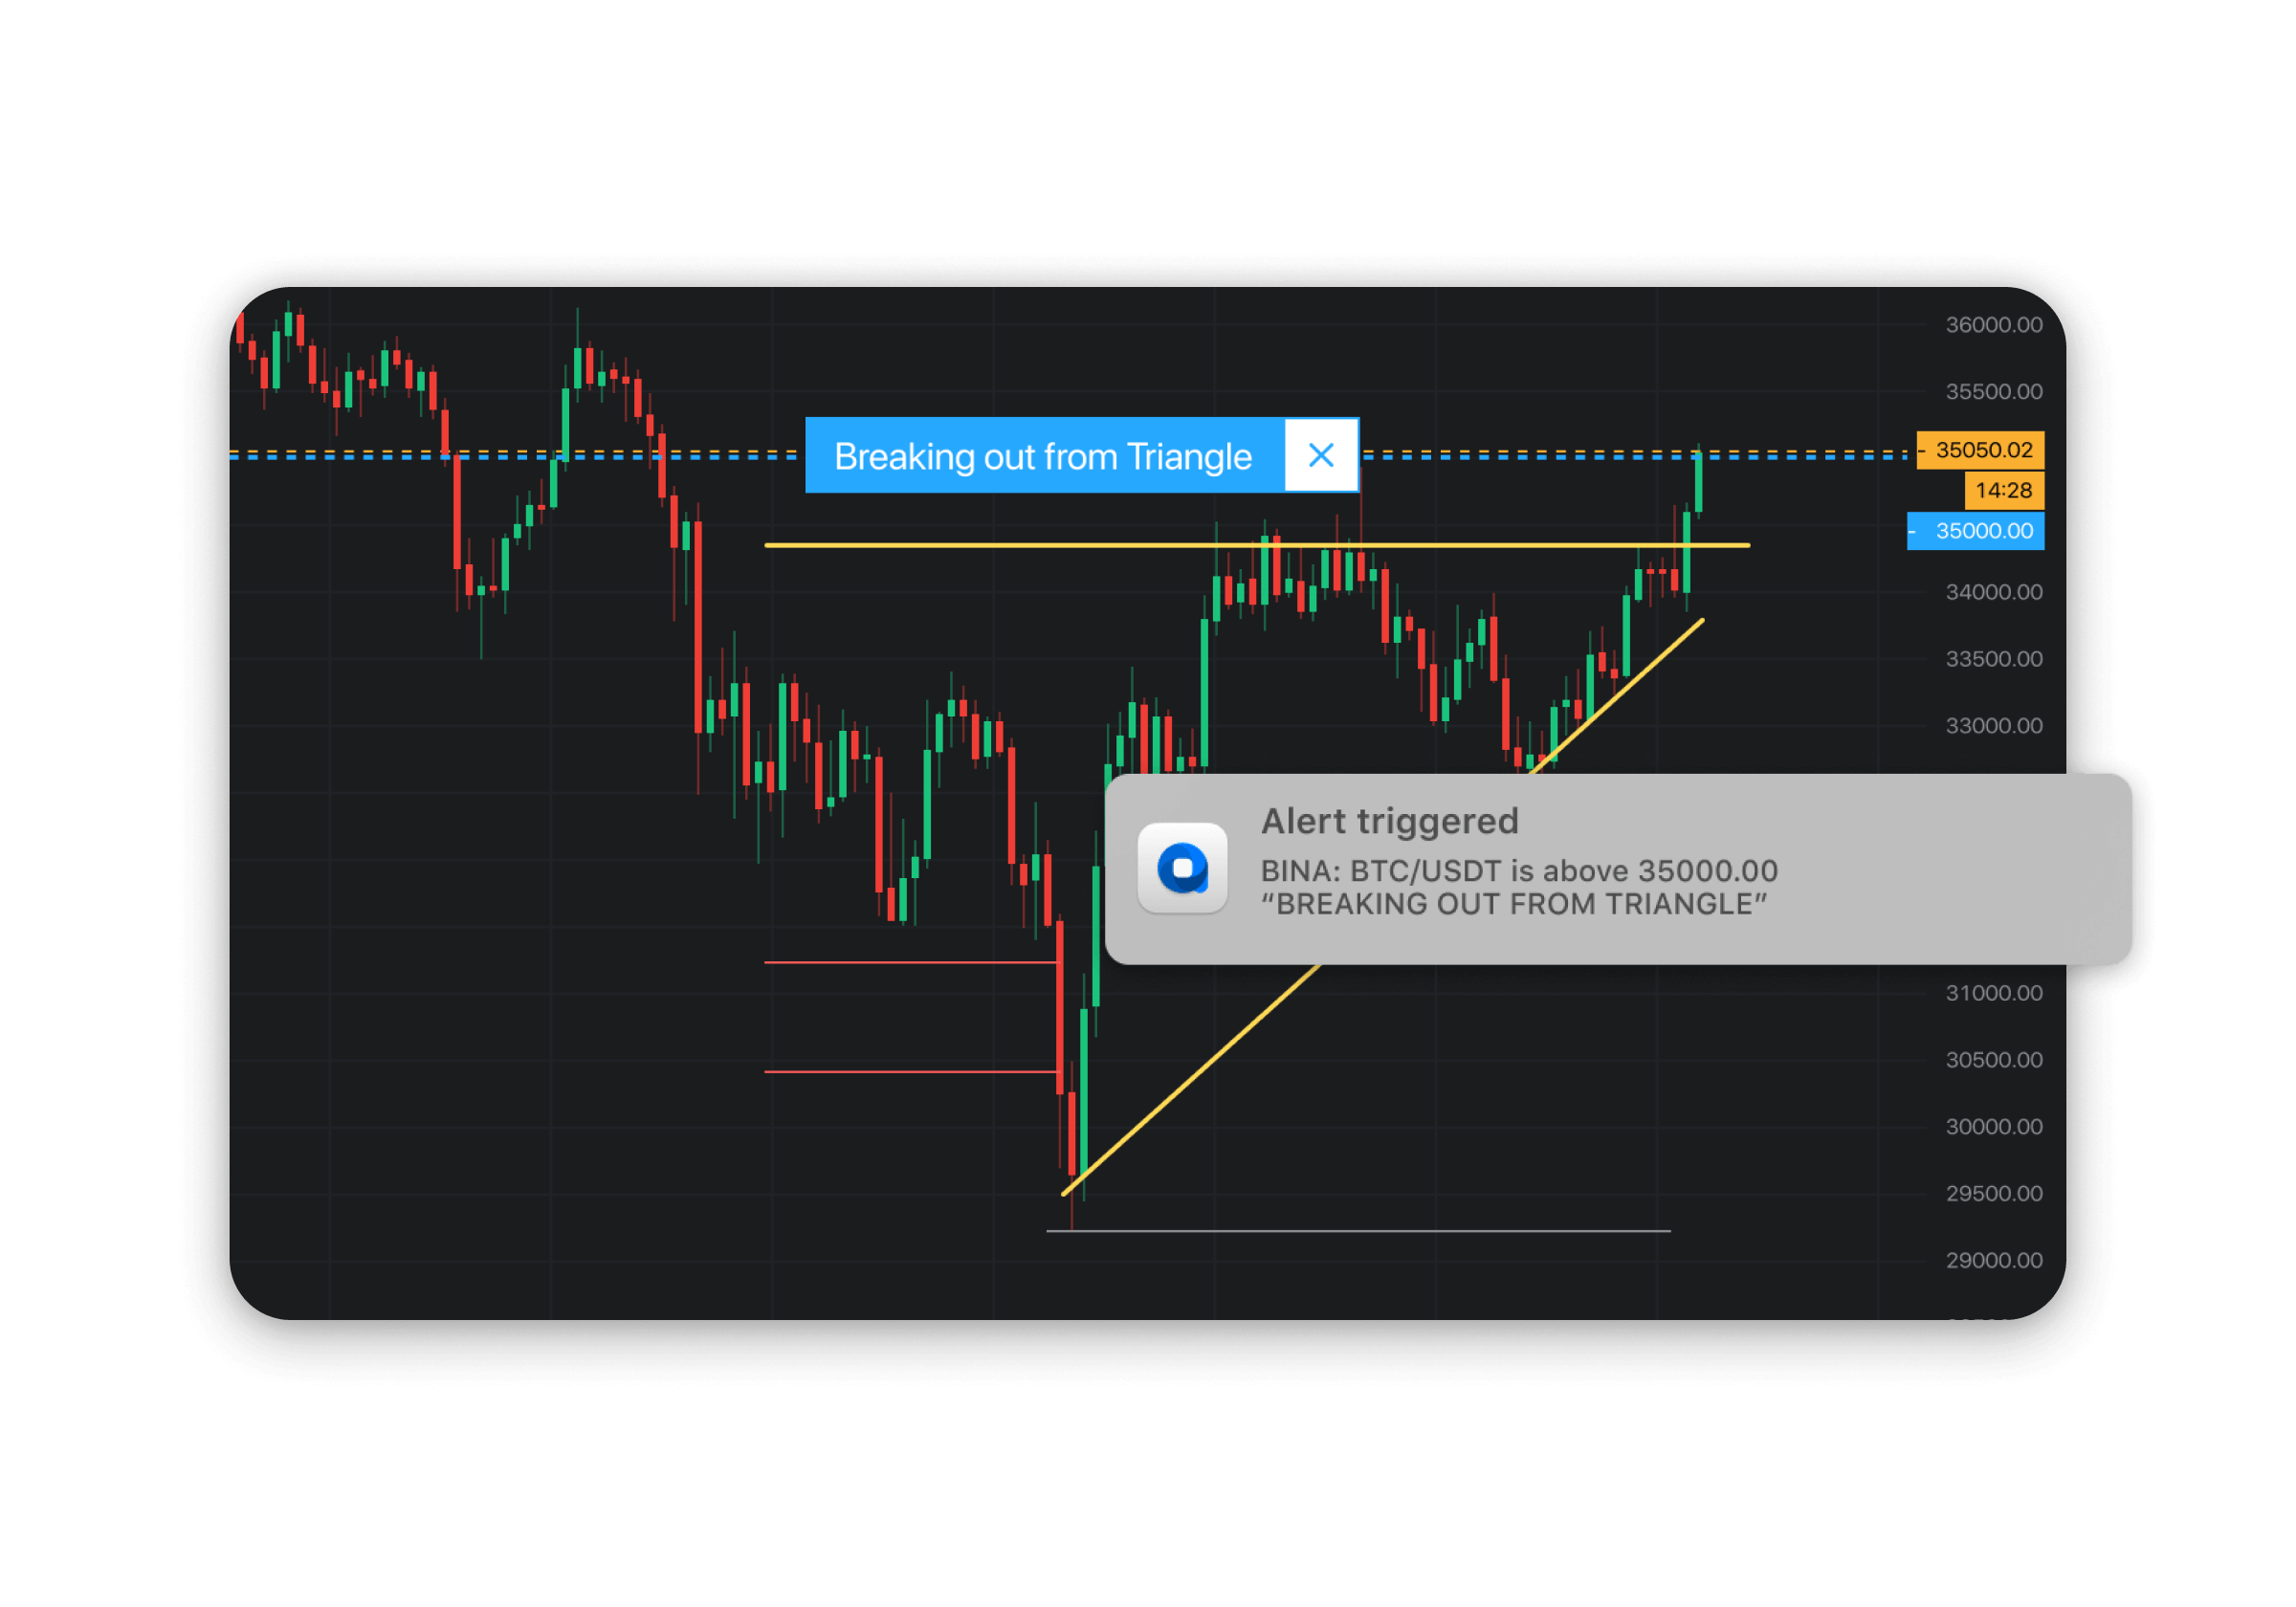 Receive immediate alerts when price breaks up or down